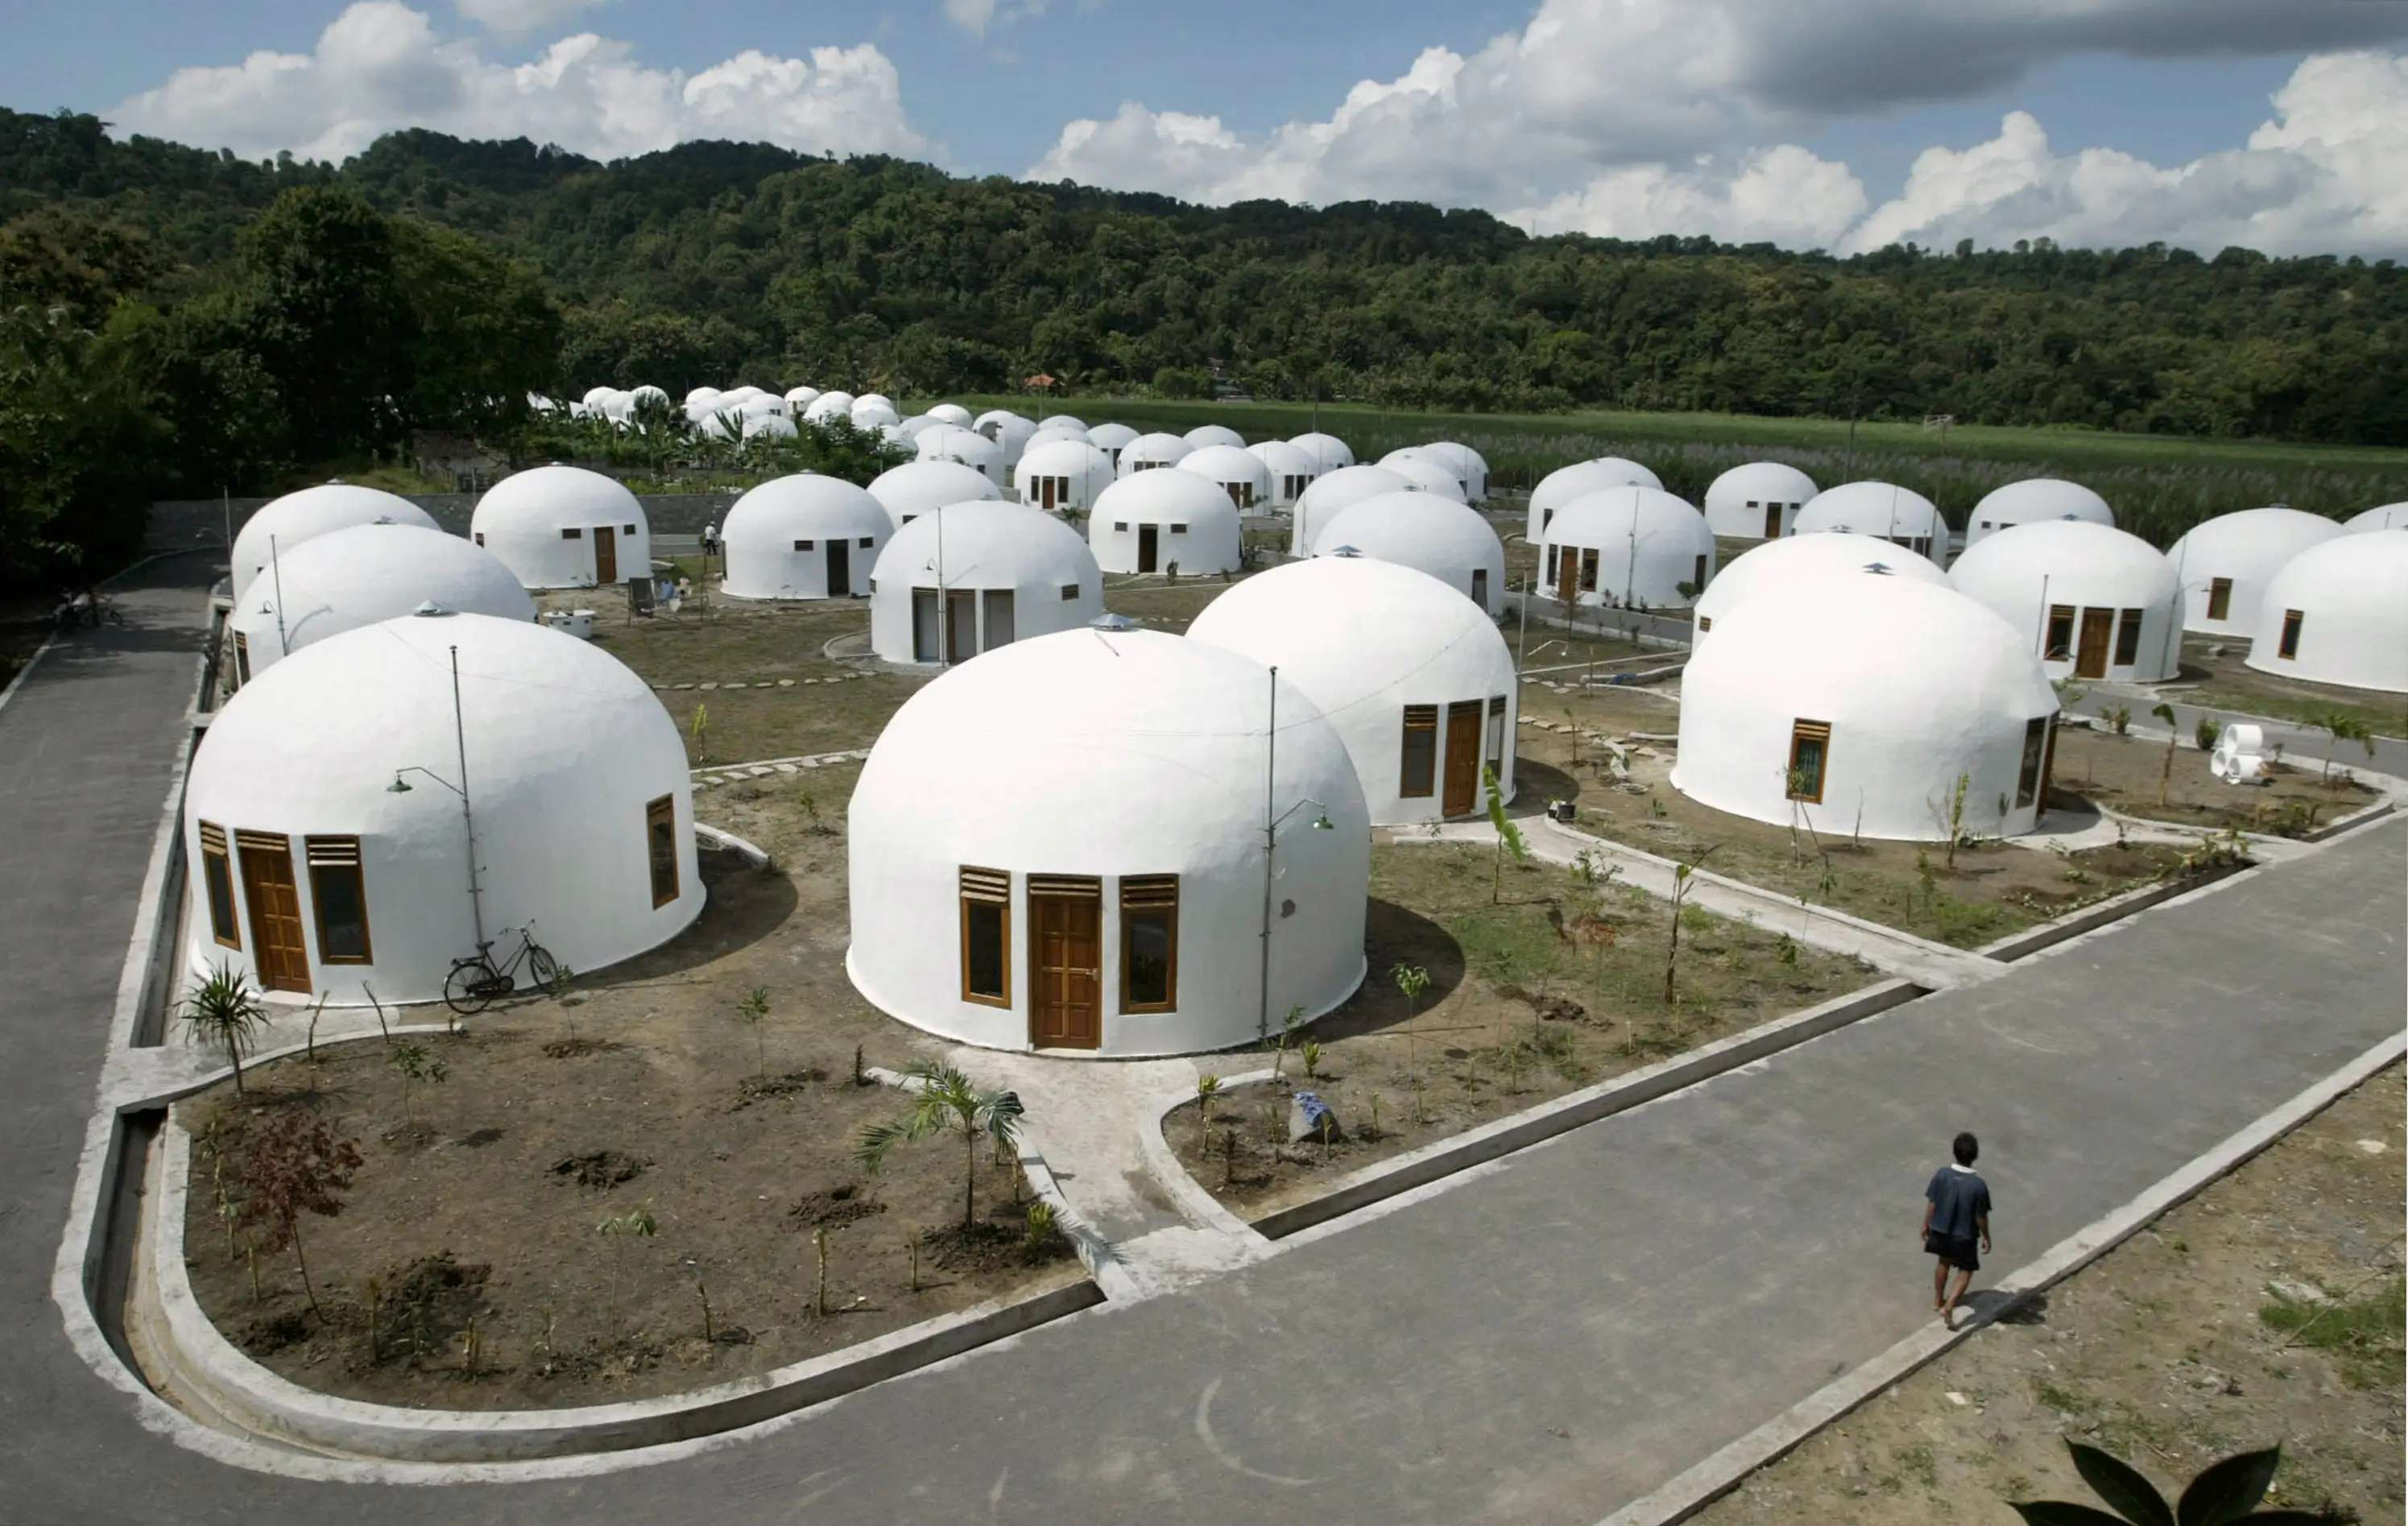 70 dome houses were built for villagers who lost their houses to an earthquake in Indonesia's ancient city of Yogyakarta. The monolithic domes can withstand earthquakes and winds up to 190 mph.